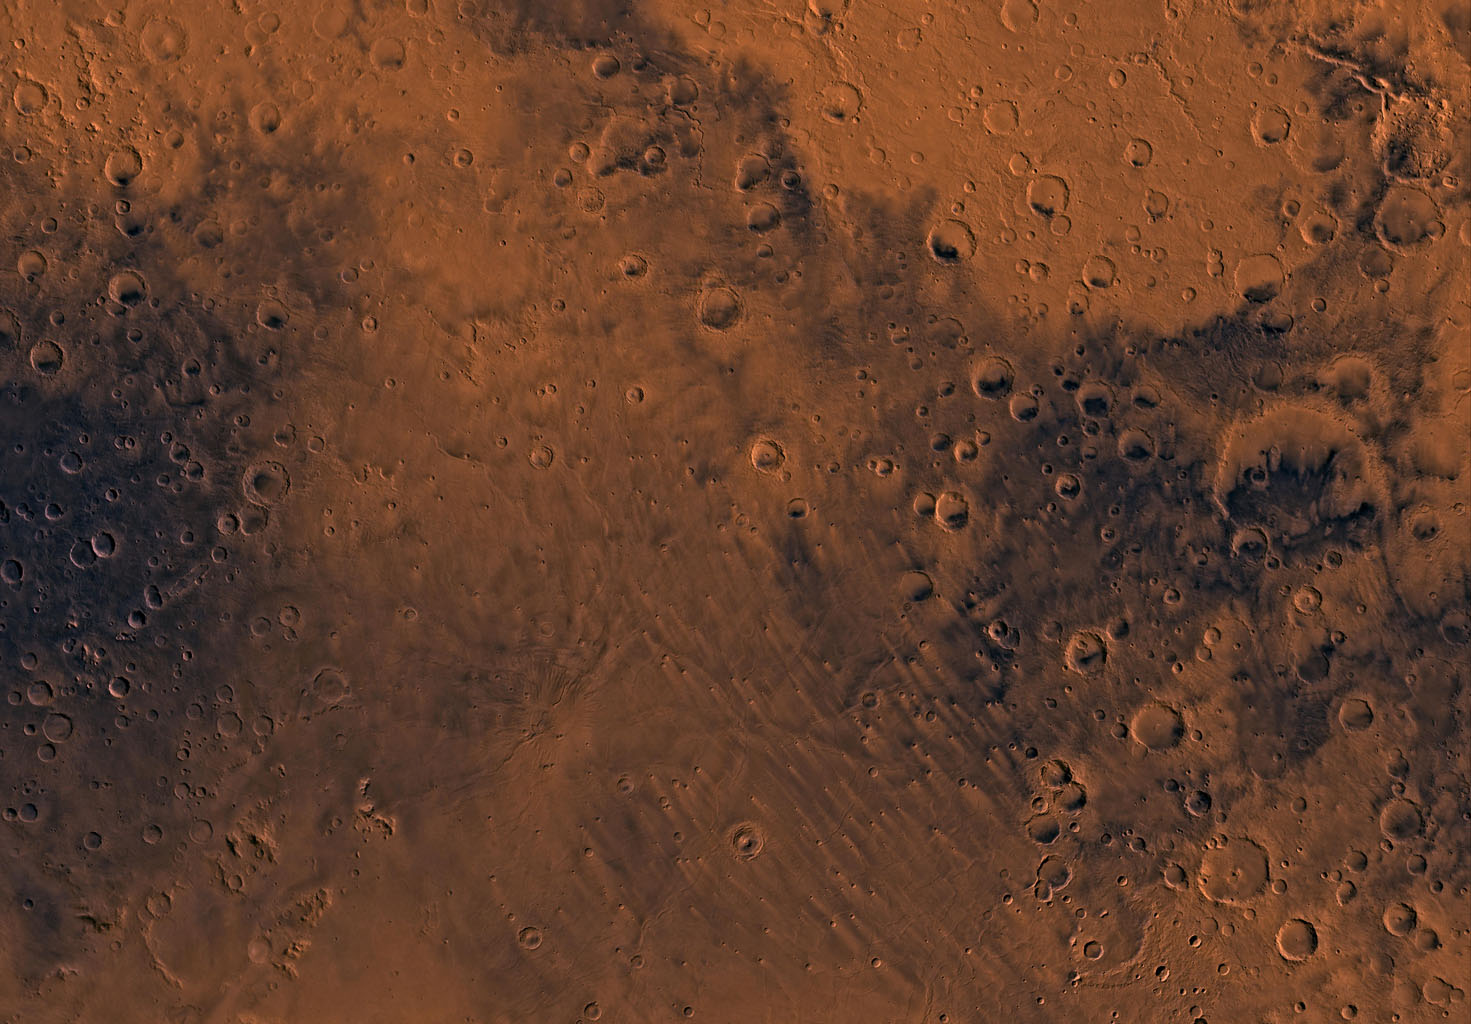 Mars digital-image mosaic merged with color of the MC-22 quadrangle, Mare Tyrrhenum region of Mars. This image is from NASA's Viking Orbiter 1.